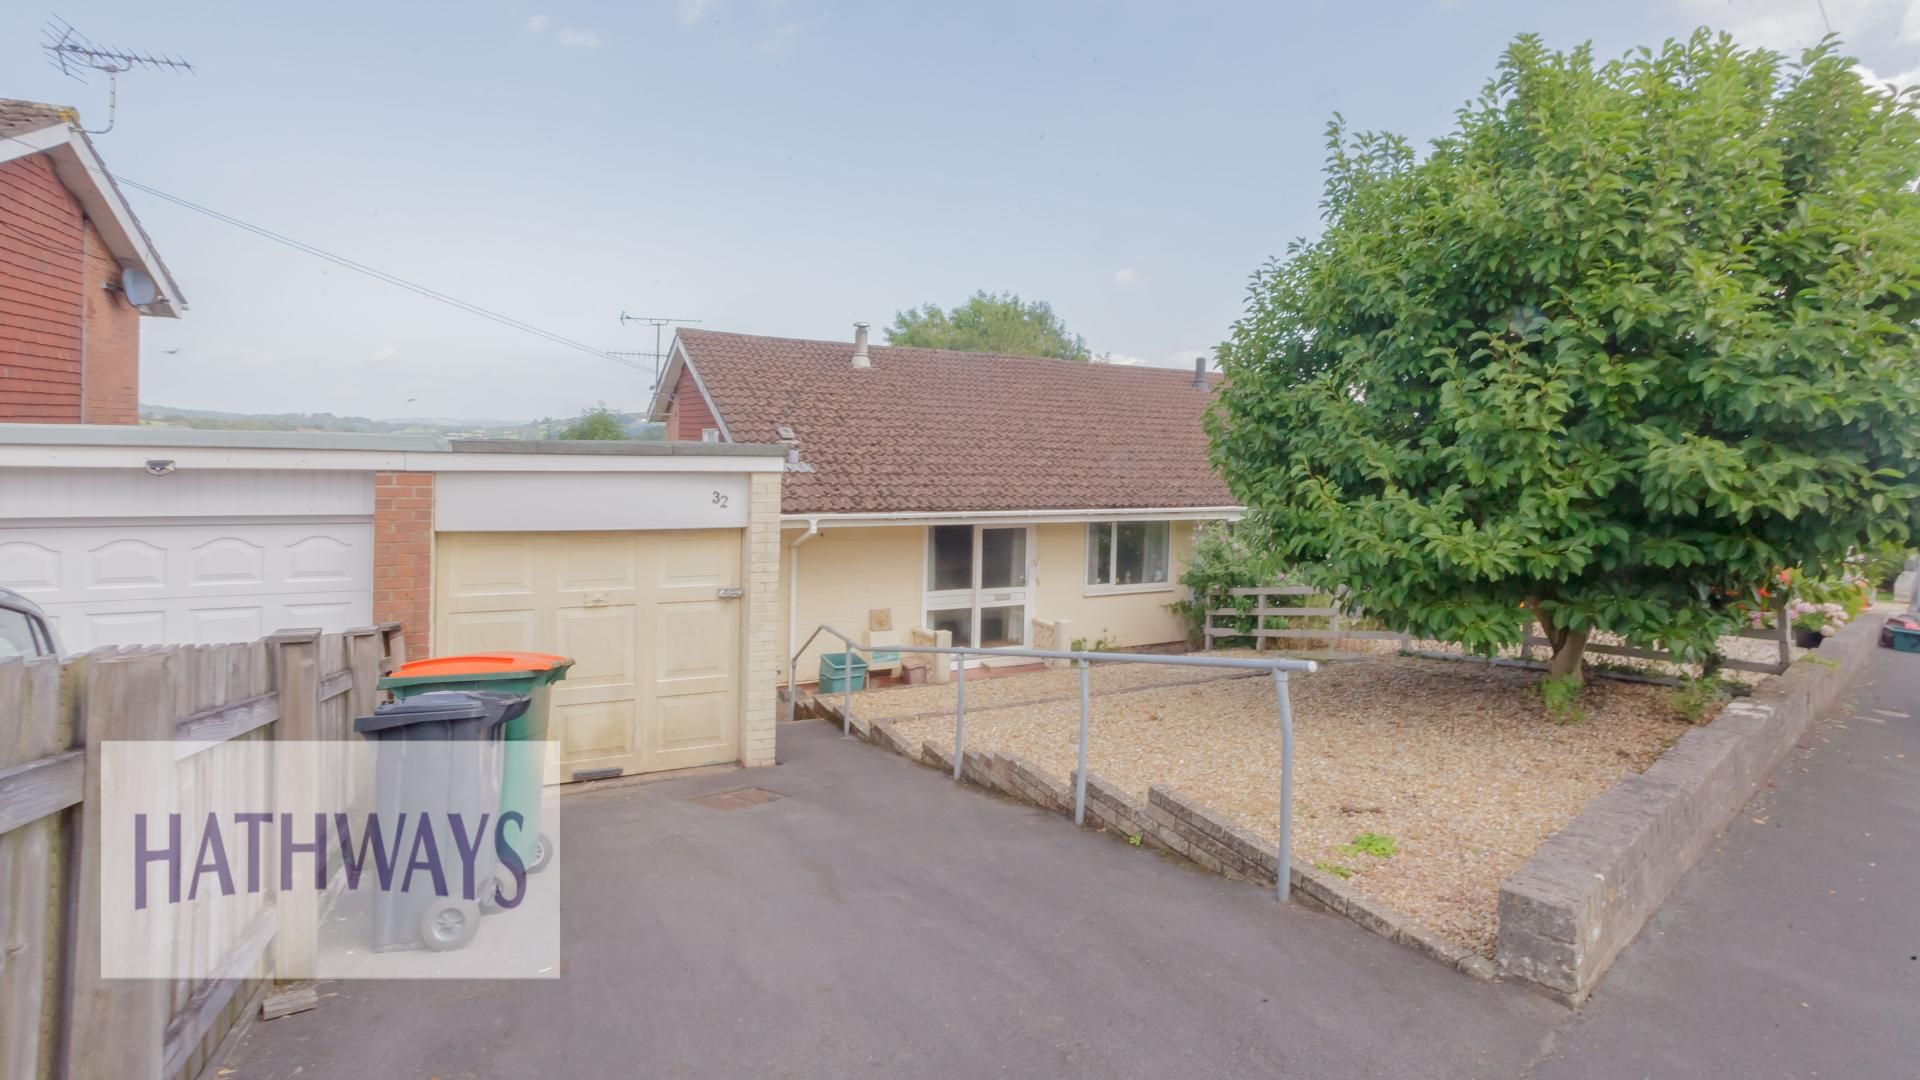 4 bed house for sale in Glen Usk View, NP18